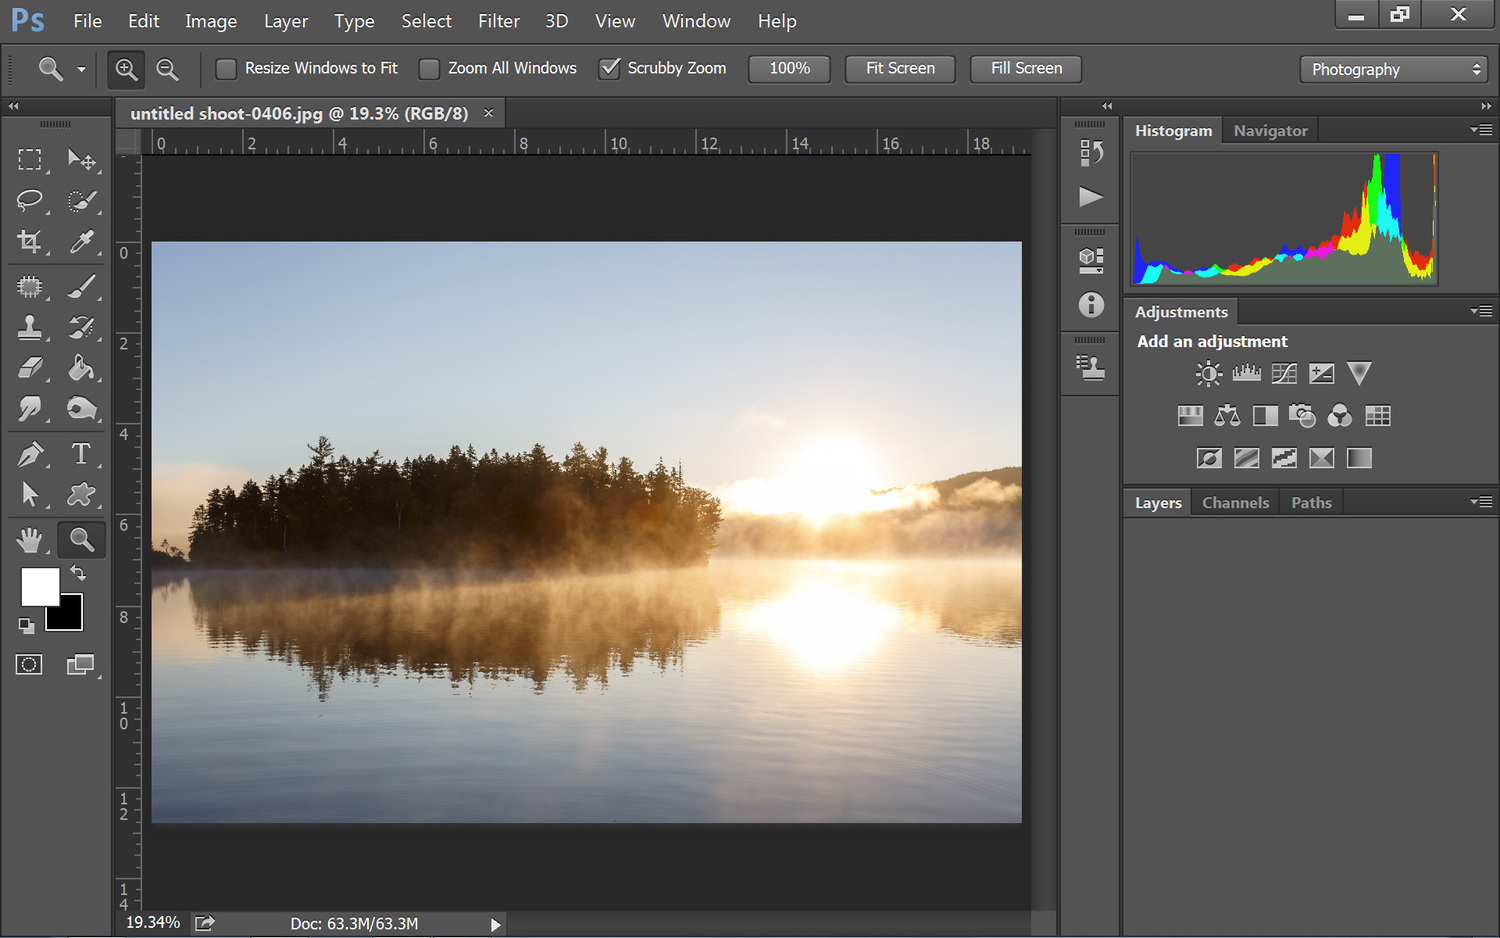 Beginners guide to photoshop cc 2015 the basic layout more than beginners guide to photoshop cc 2015 the basic layout ccuart Image collections